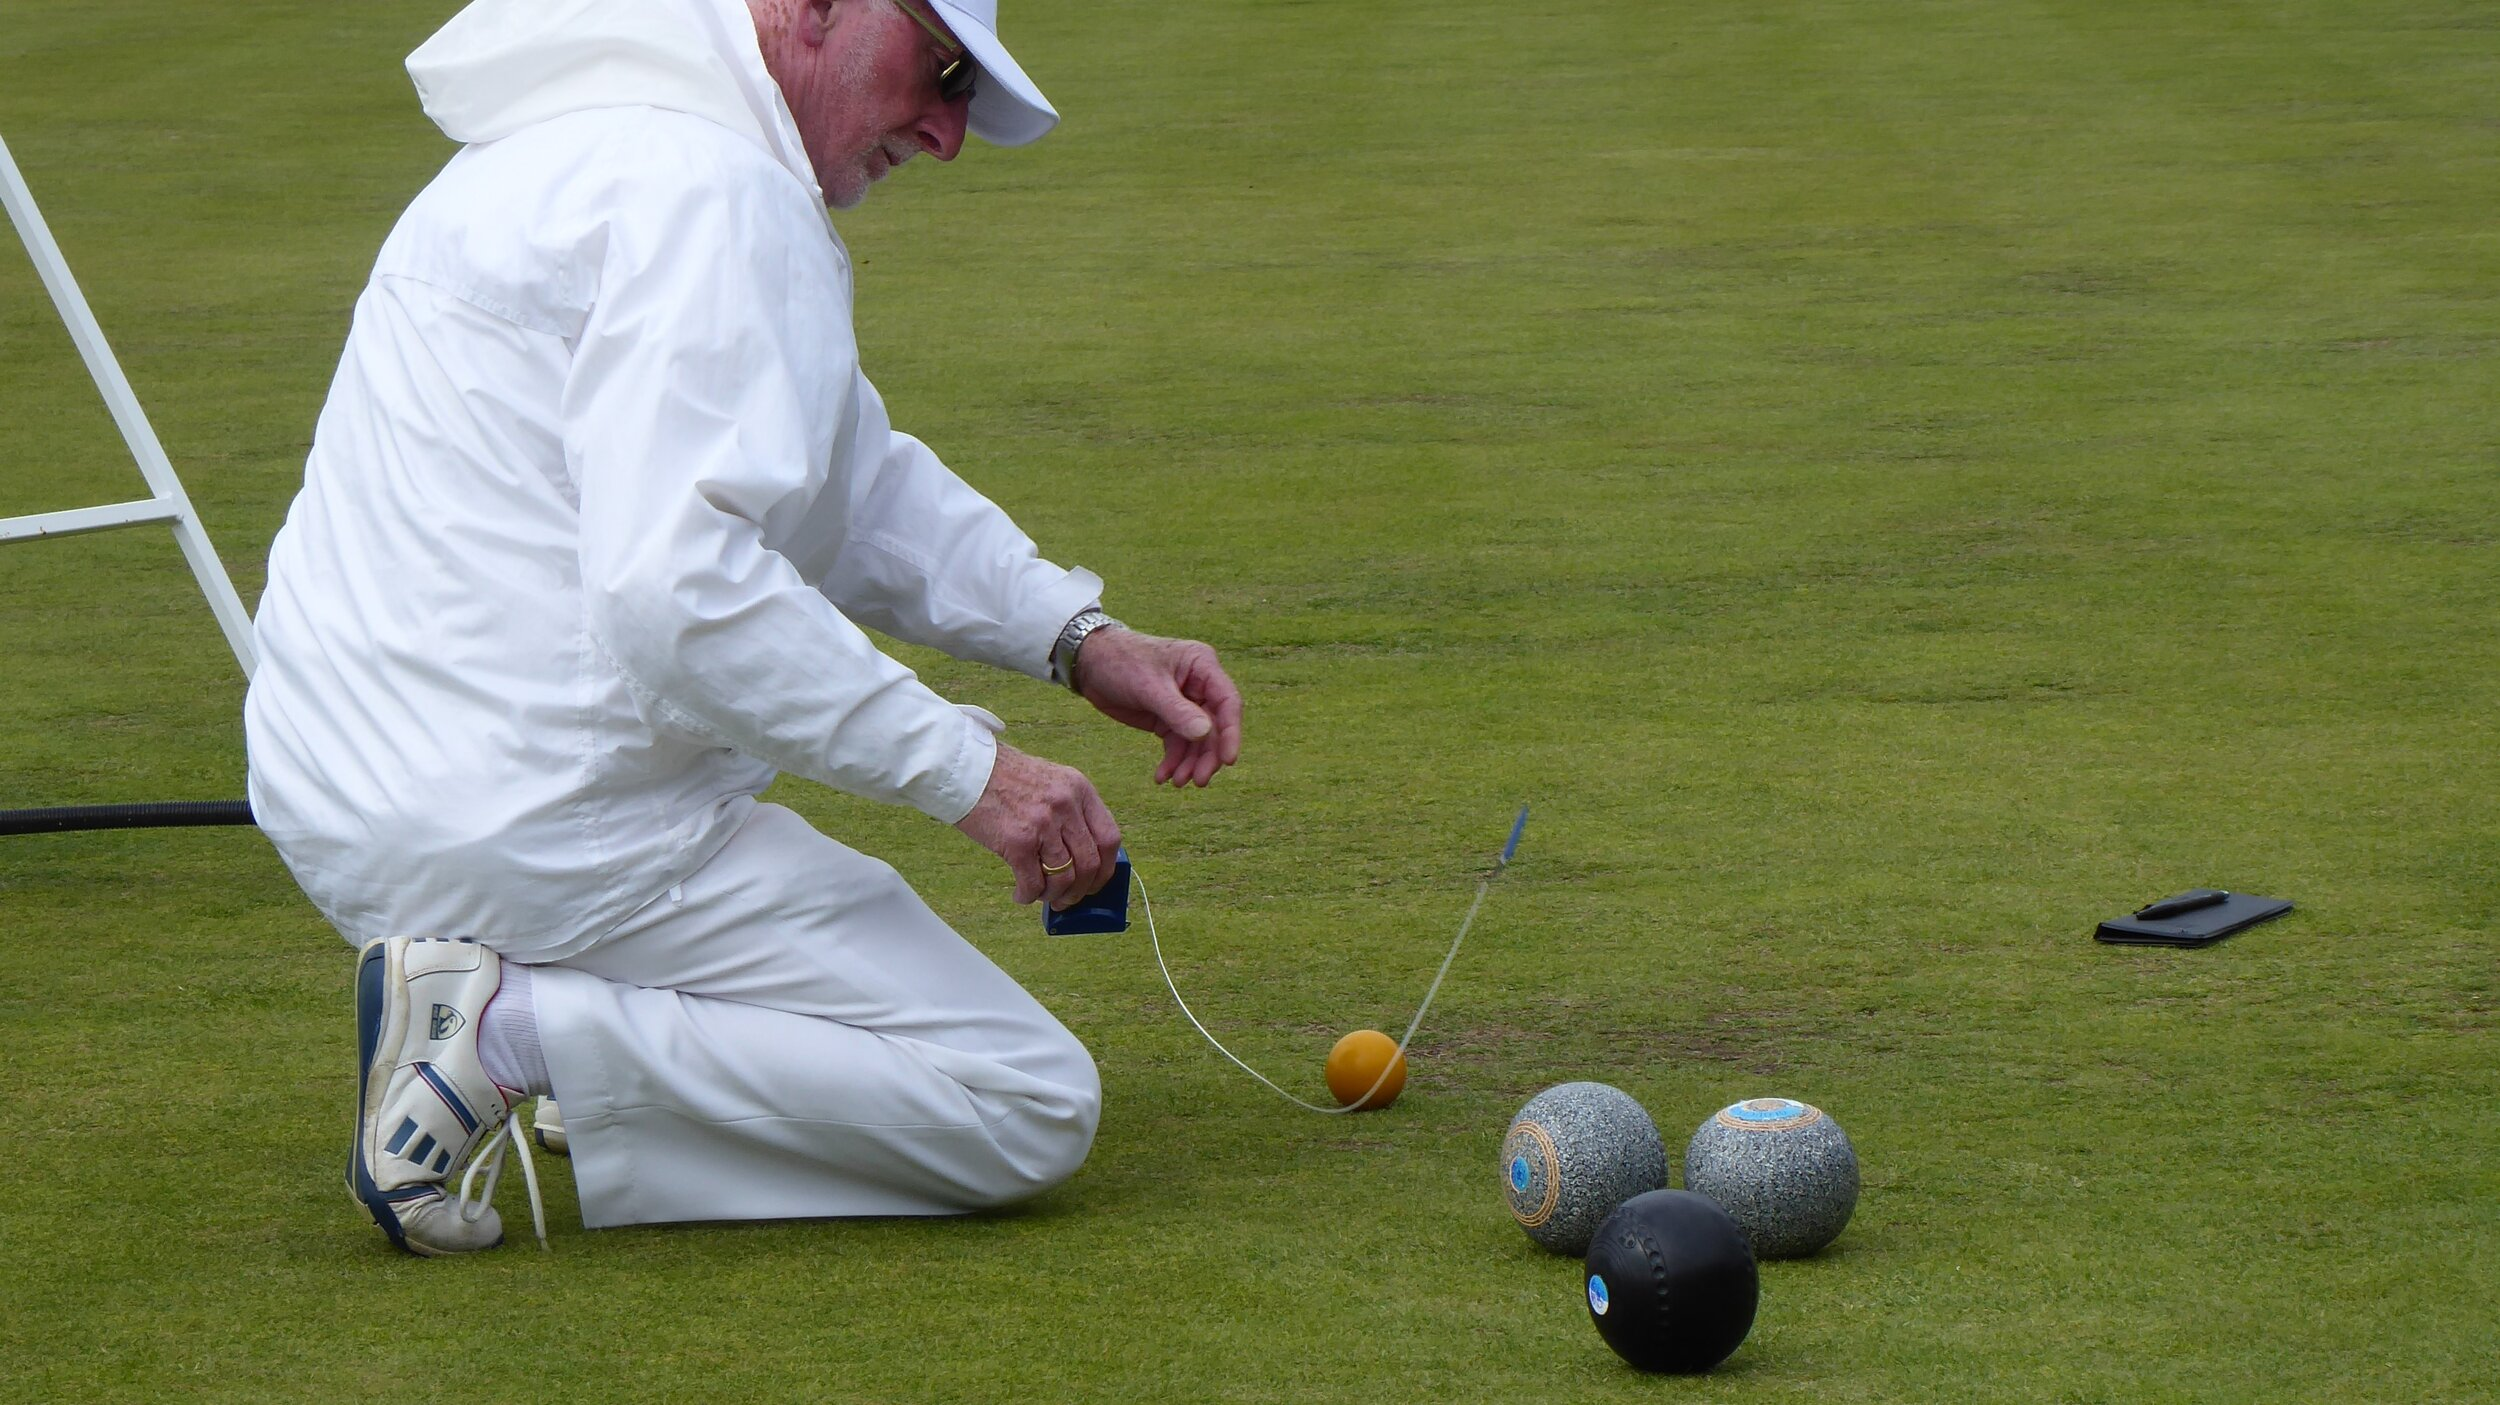 The Club's Chief Marker Demonstrates The Latest Recommended Measuring Technique